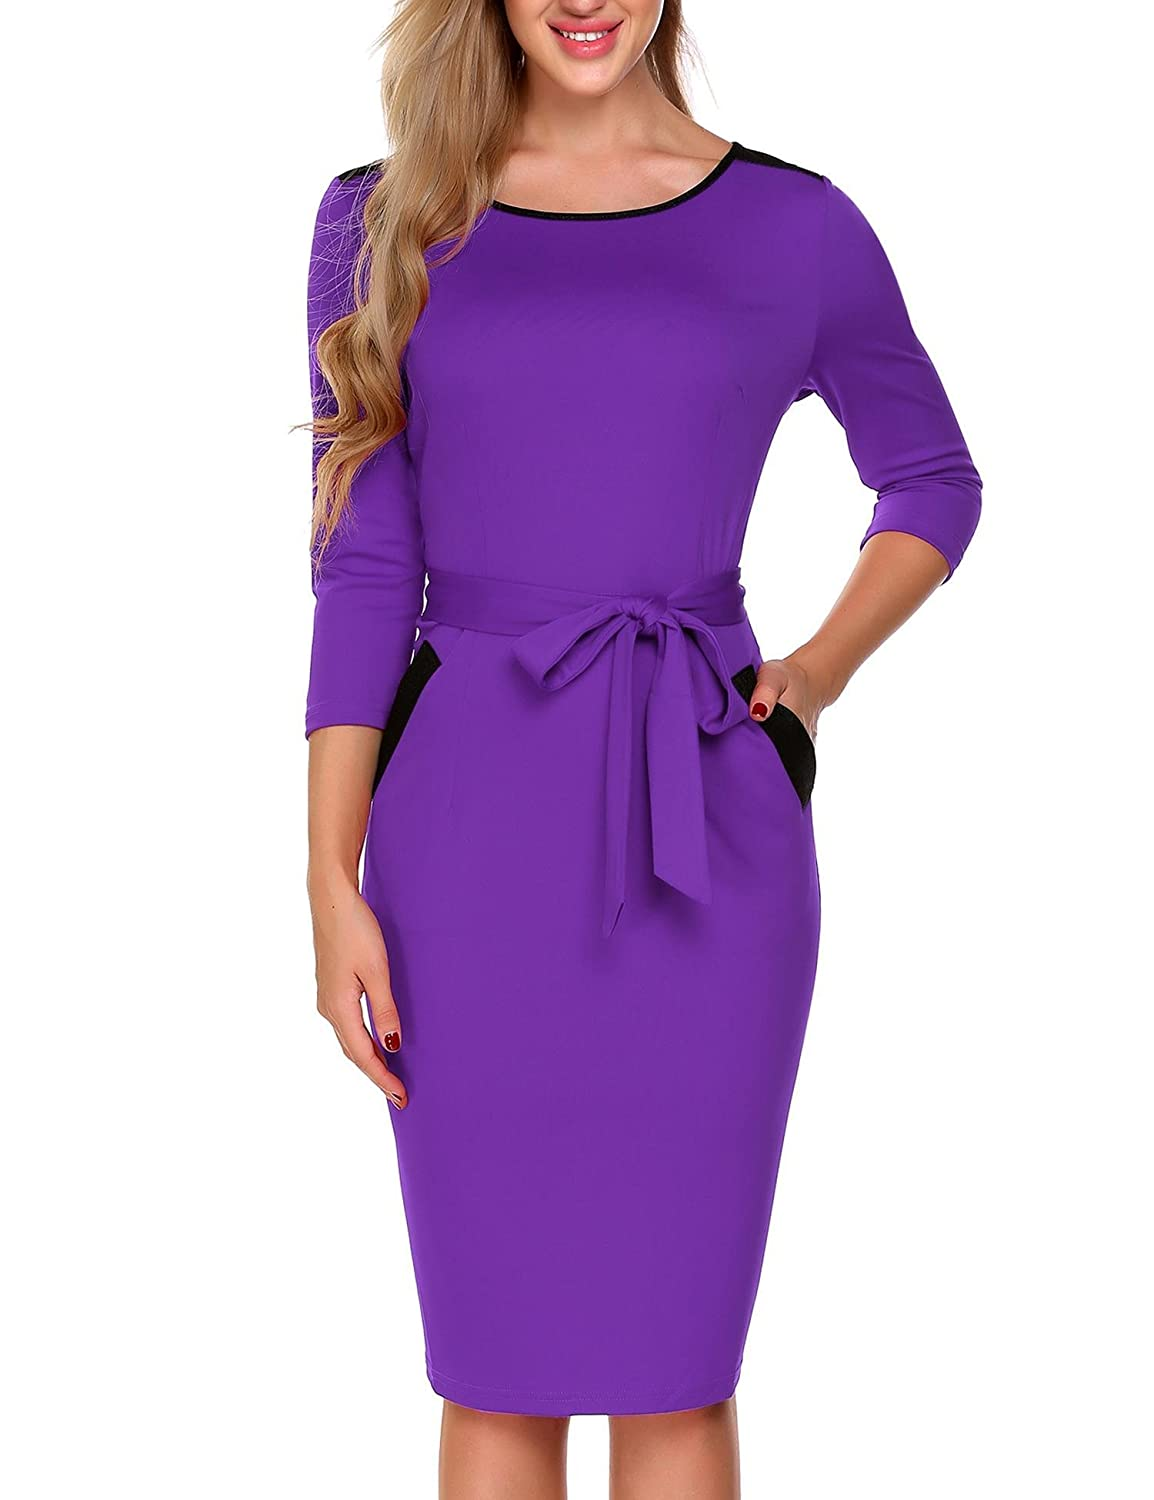 Burlady Women's Crew Neck 3/4 Sleeve Belt Business Pencil Dress Pocket #SWH018484